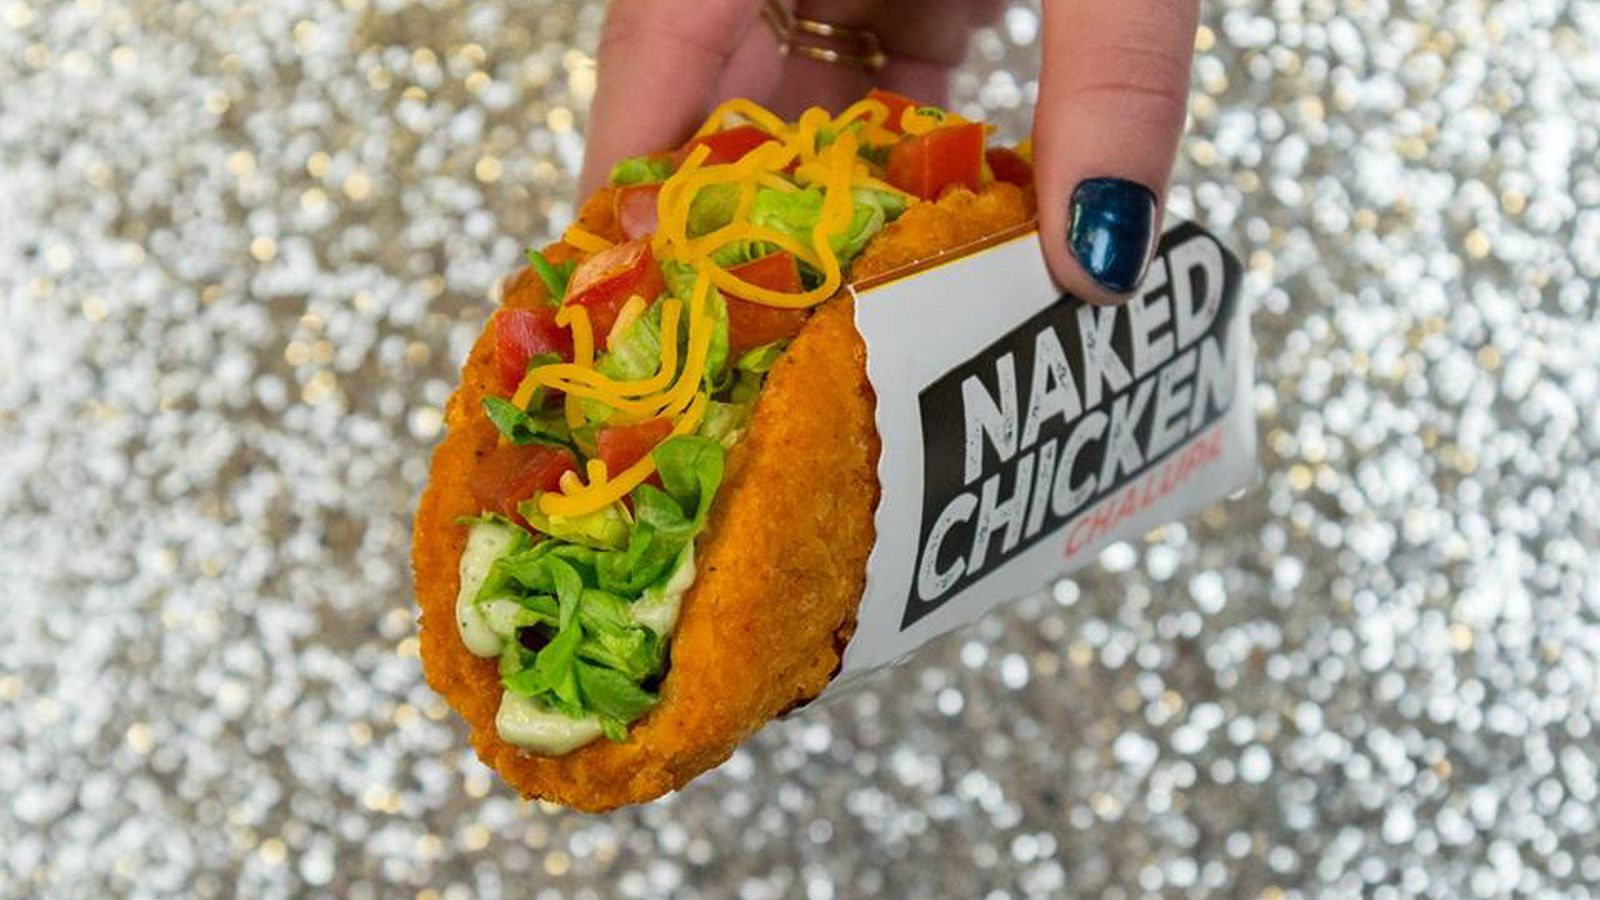 Missed the naked chicken chalupa